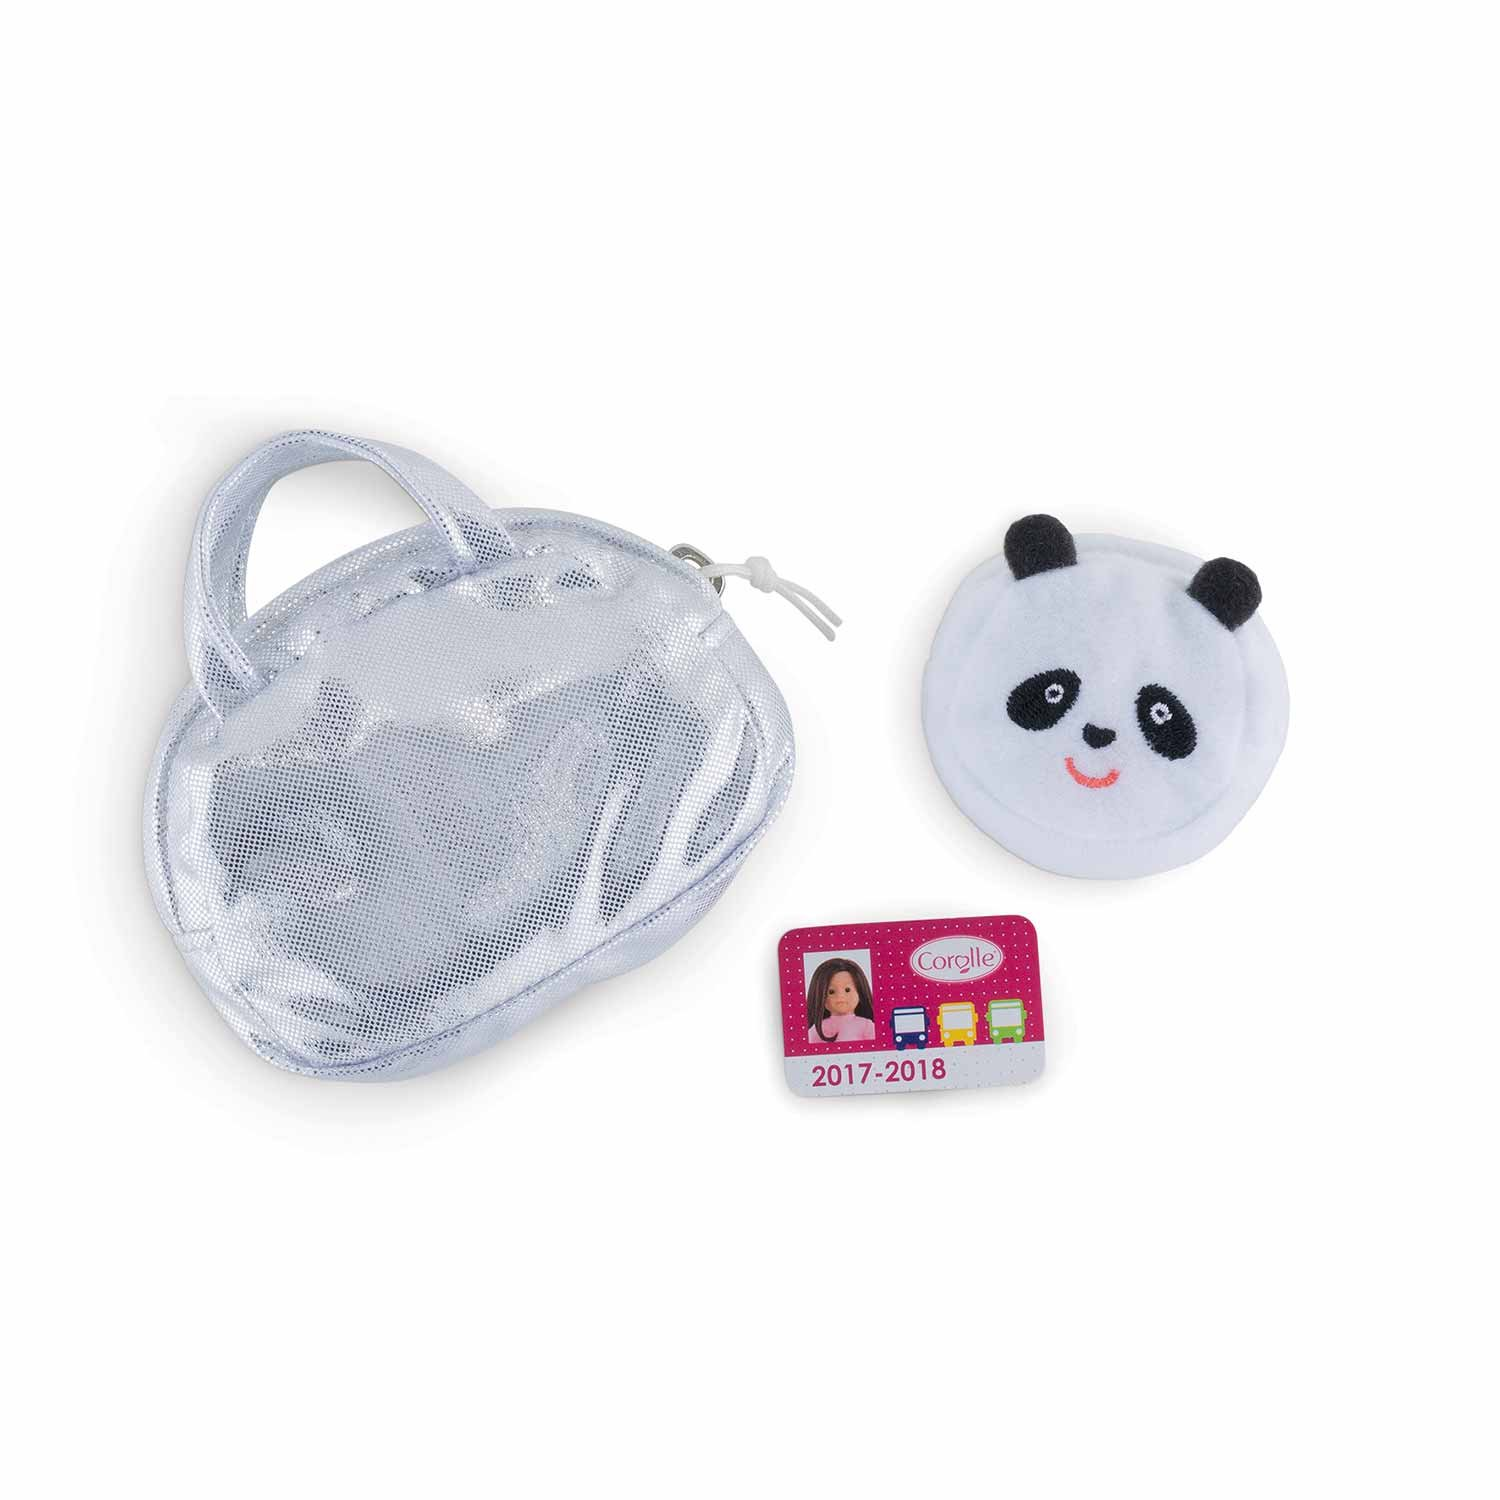 Corolle–Doll fpl08–Handbag Wallet–Bus Card for My